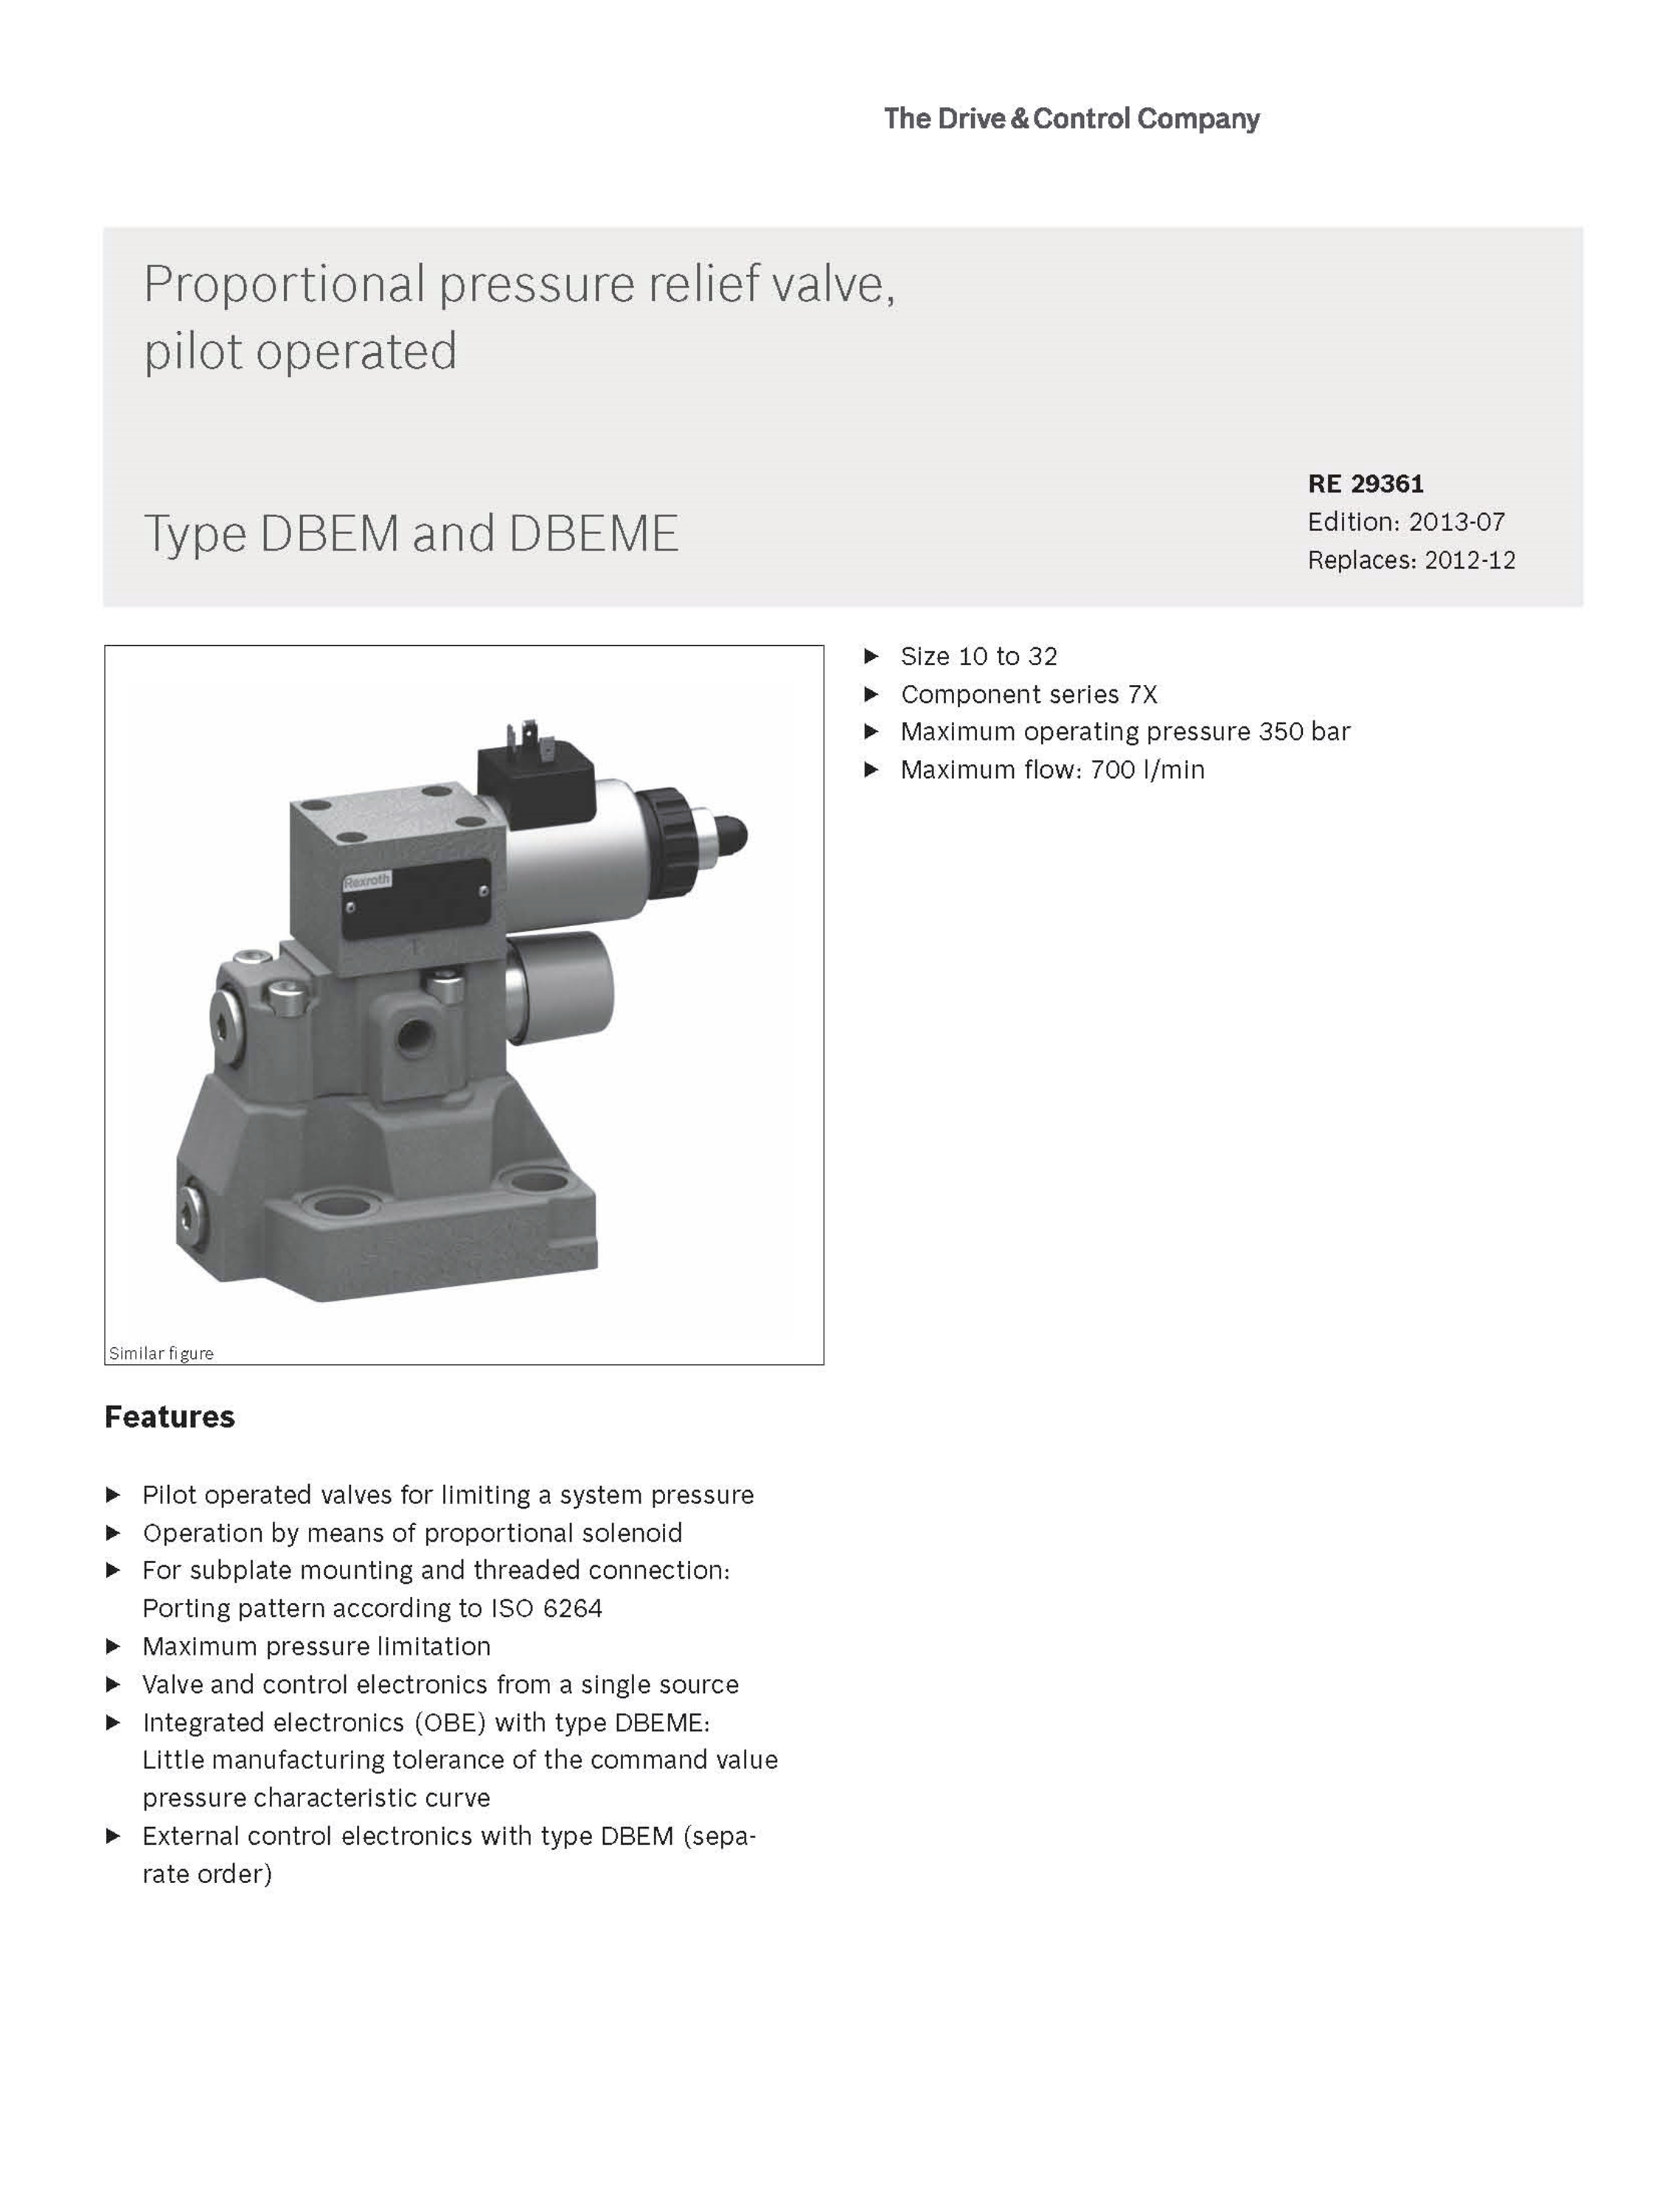 Rexroth DBEM and DREM of DBEM10,DREM10,DBEM20,DREM20 hydraulic proportional relief valve